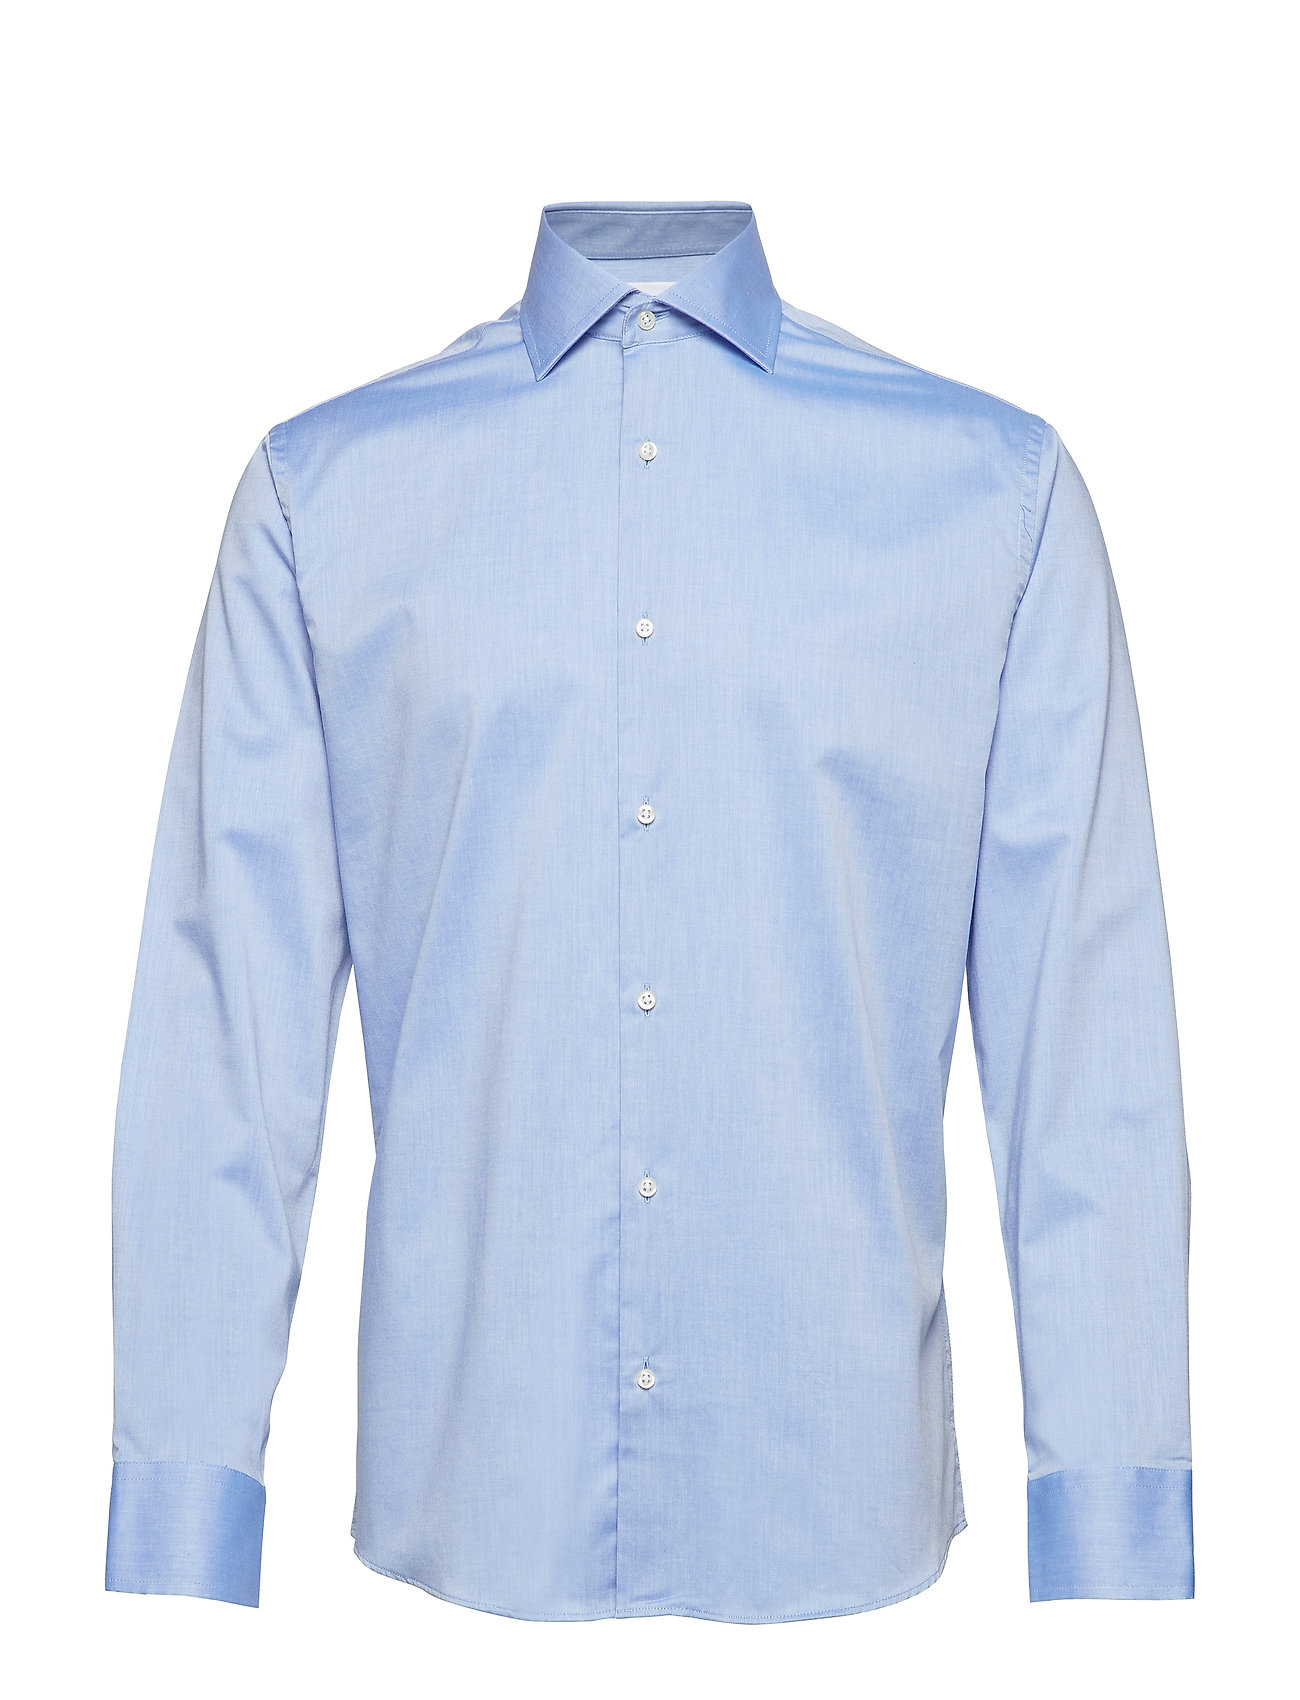 Seven Seas Copenhagen Fine Twill - Regular Fit - LIGHT BLUE